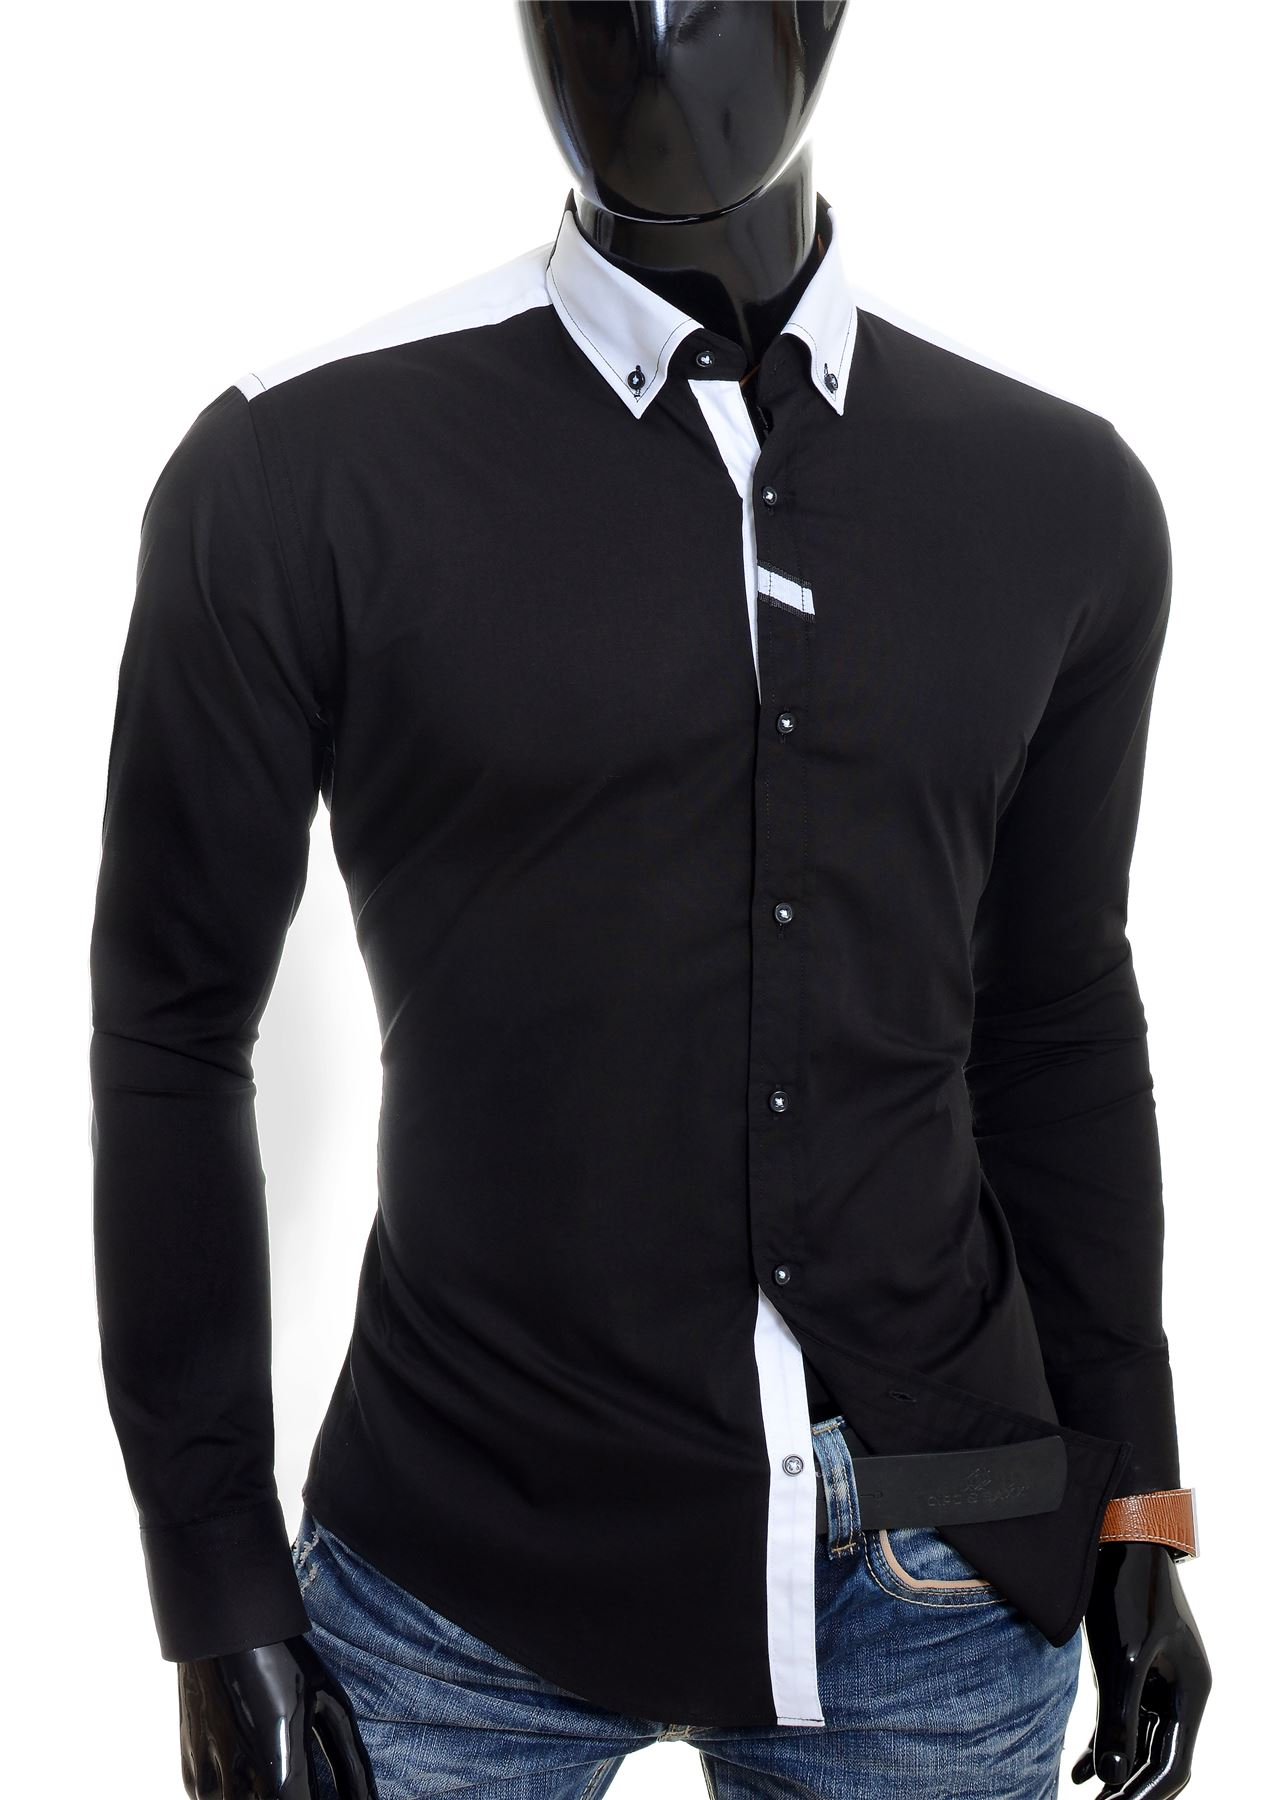 Cipo-amp-Baxx-Designer-Men-039-s-Elegant-Shirt-White-Black-Cotton-Slim-Contrast-Cuffs thumbnail 4